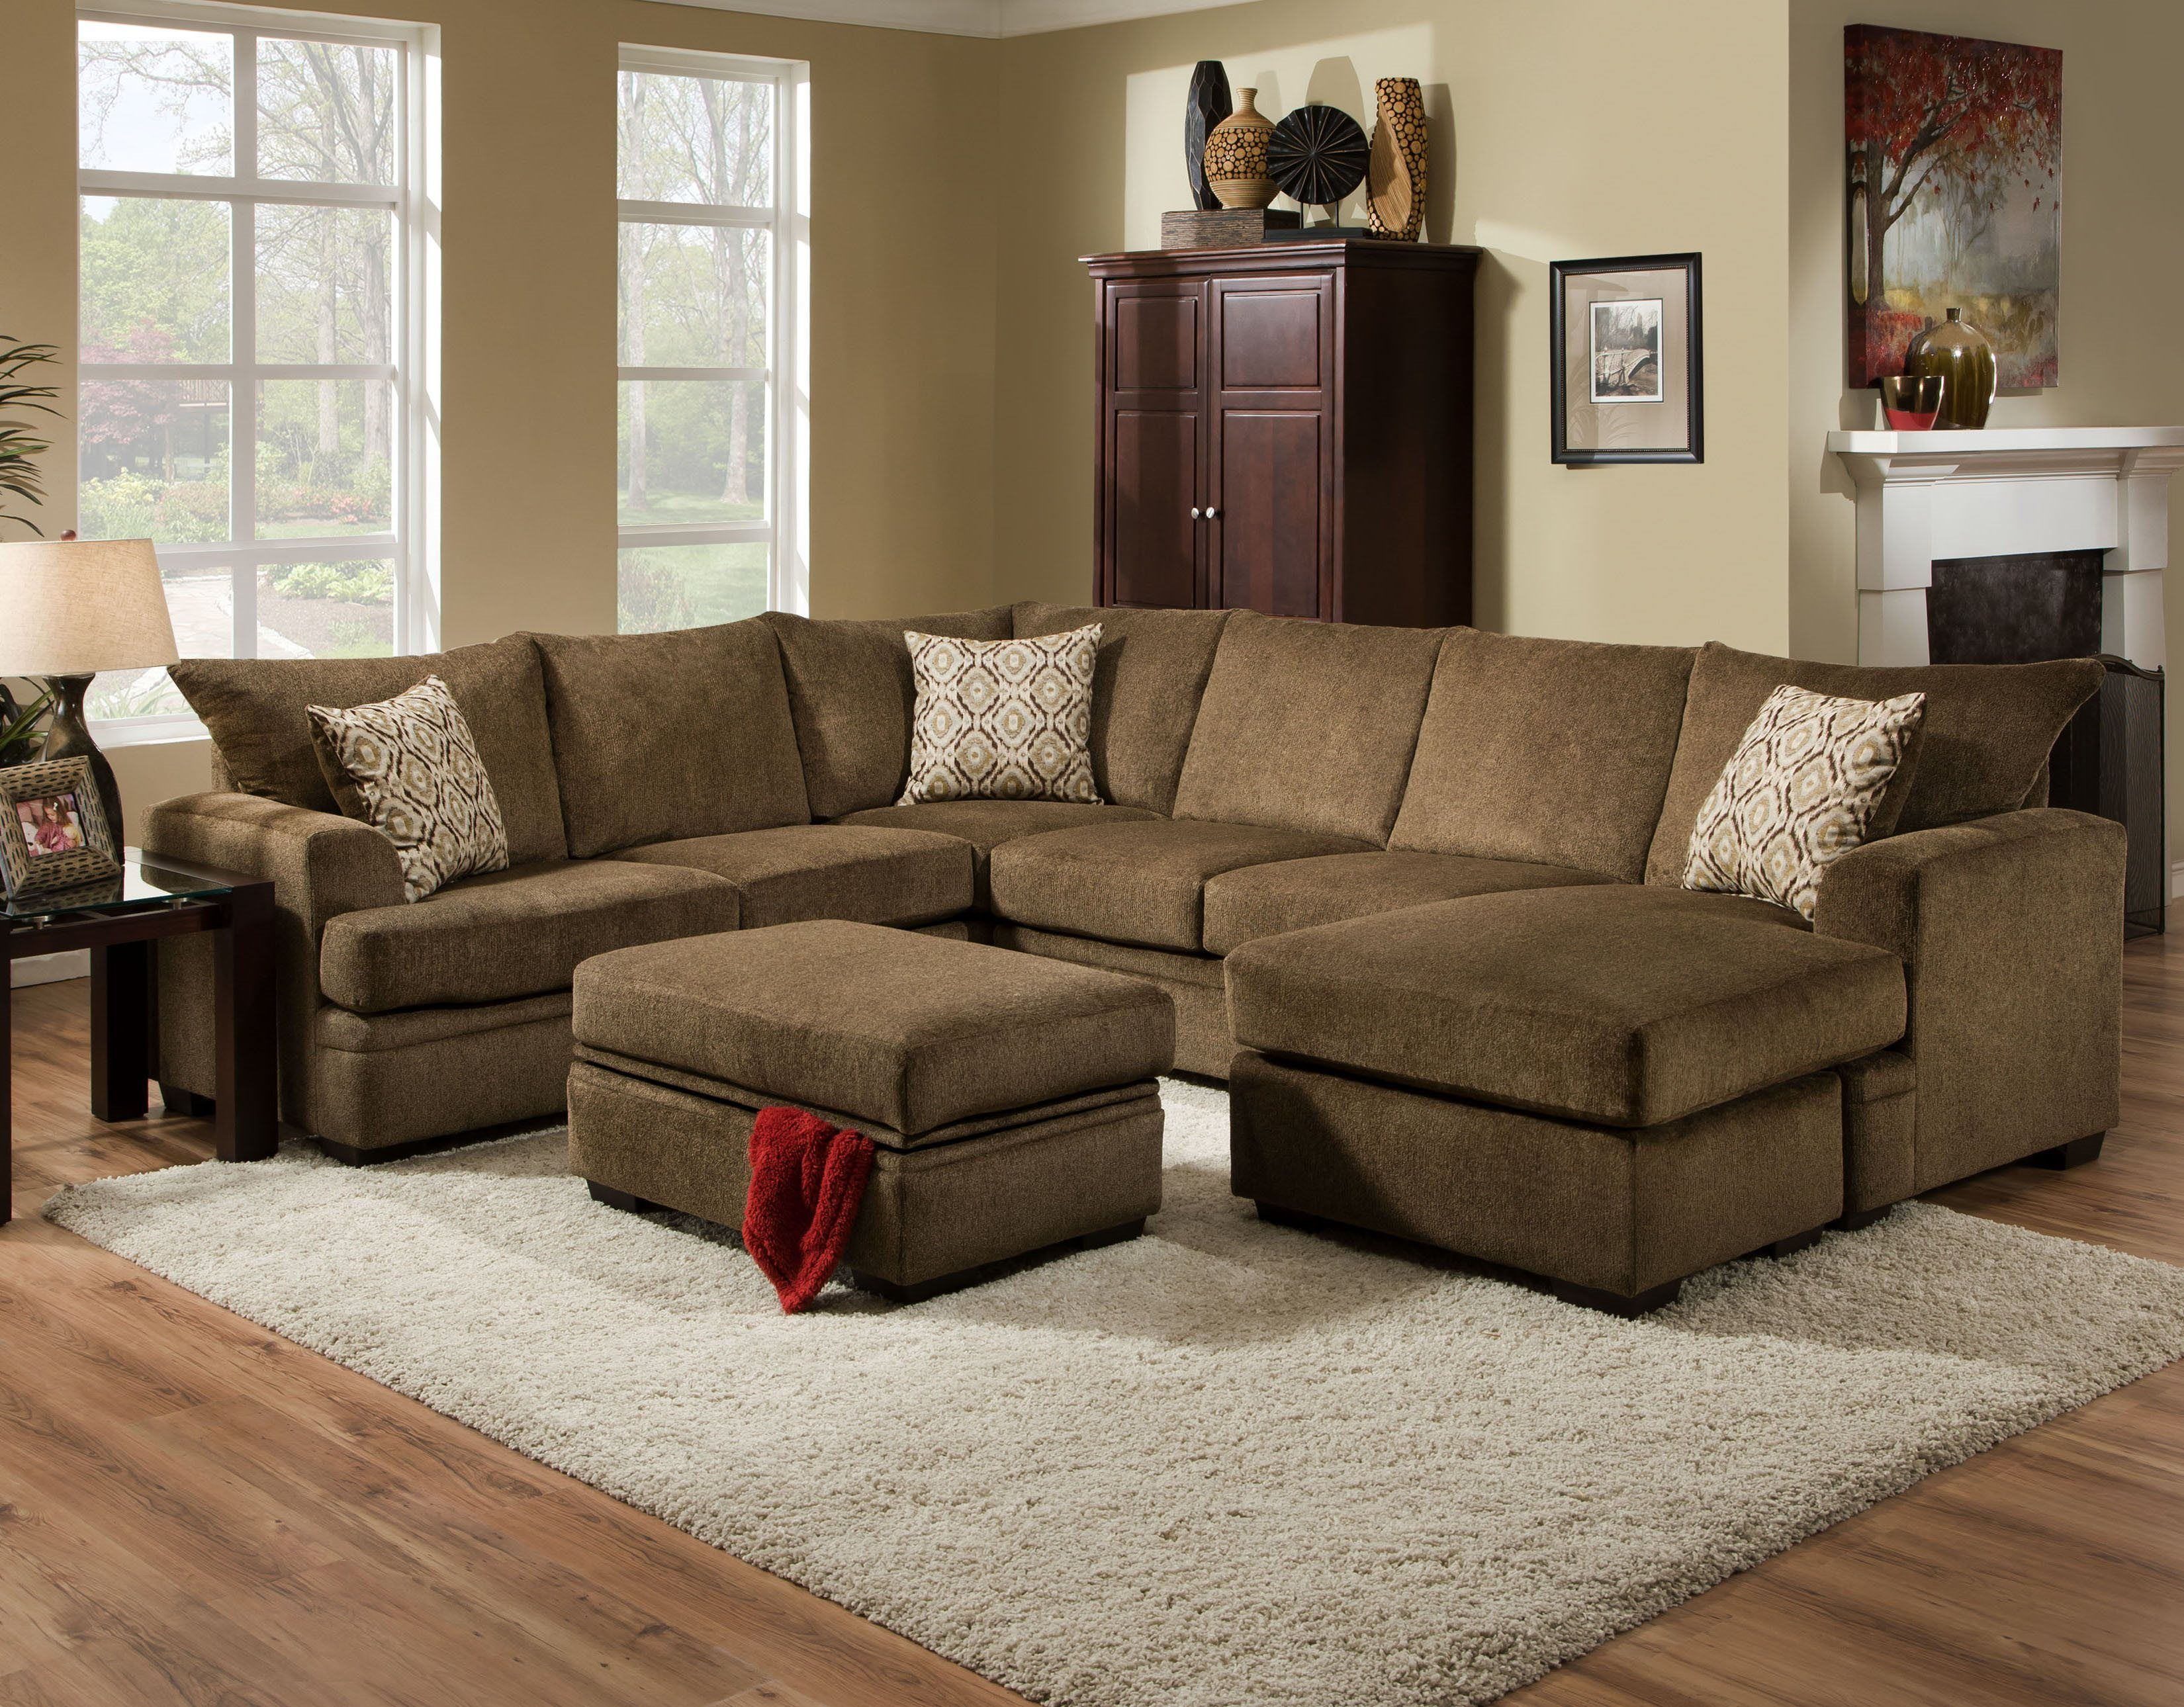 High Quality Darvin Furniture Orland Park, Chicago, IL